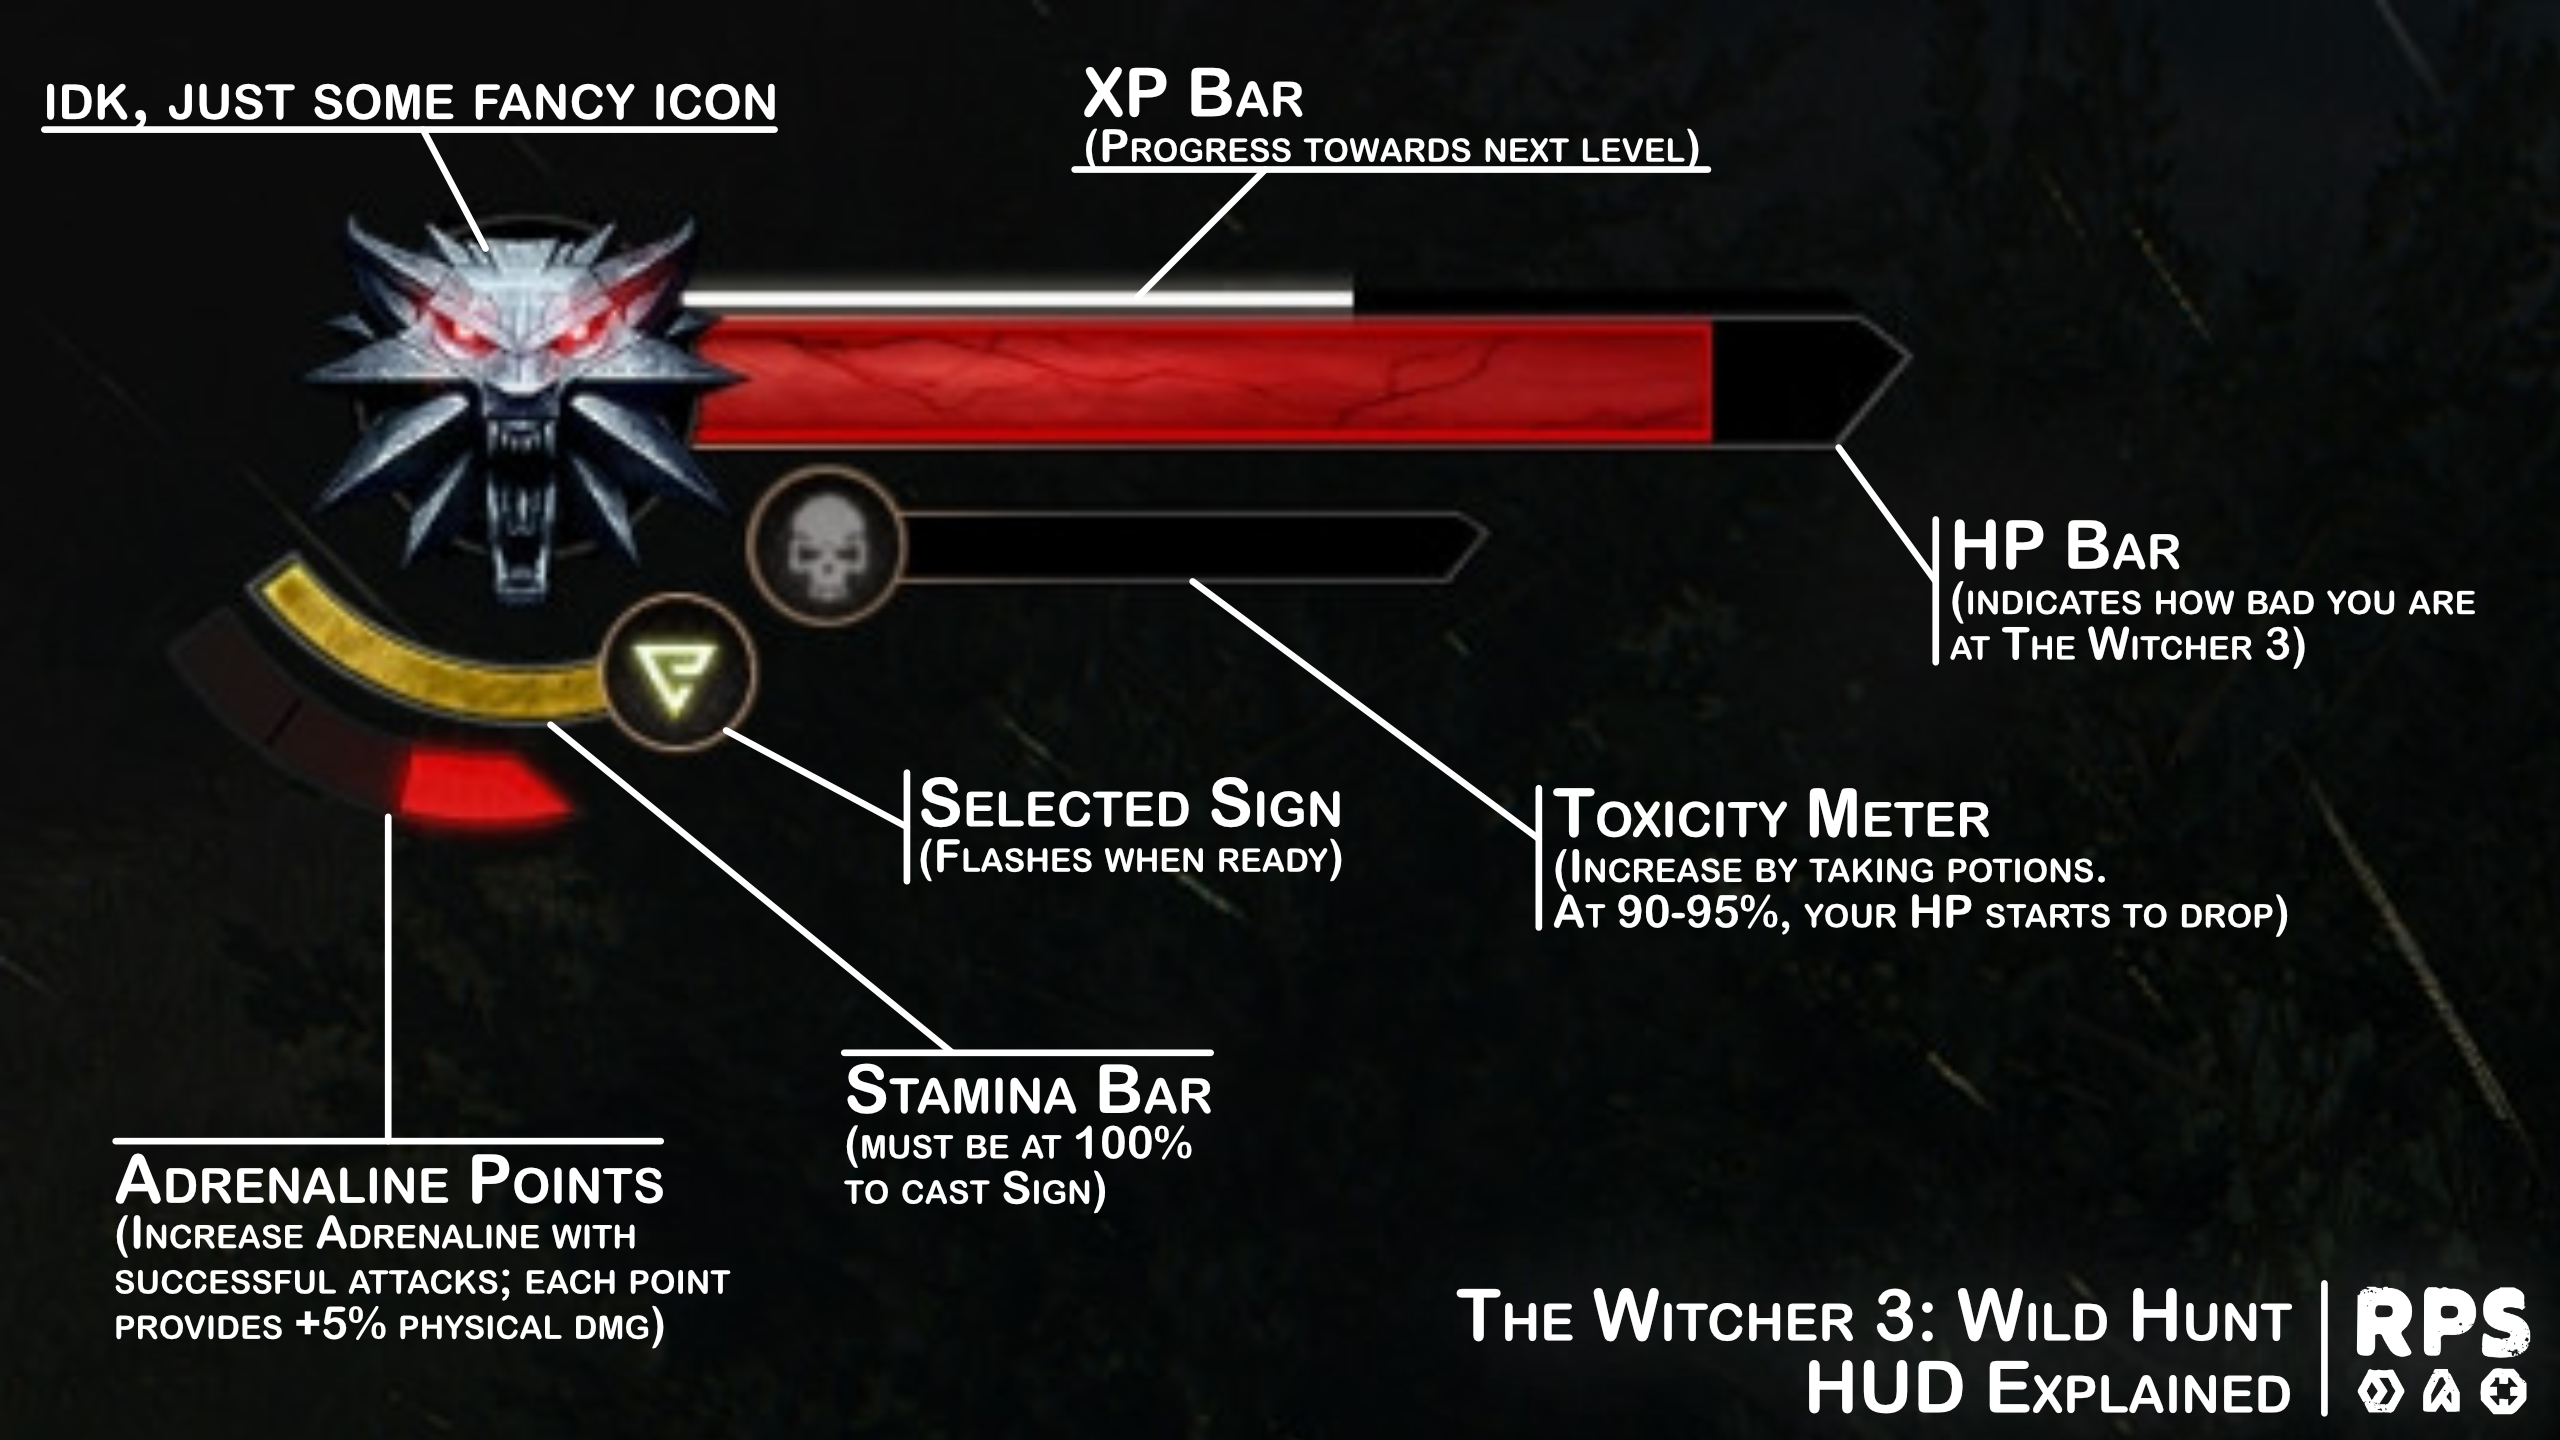 The Witcher 3 HUD explained